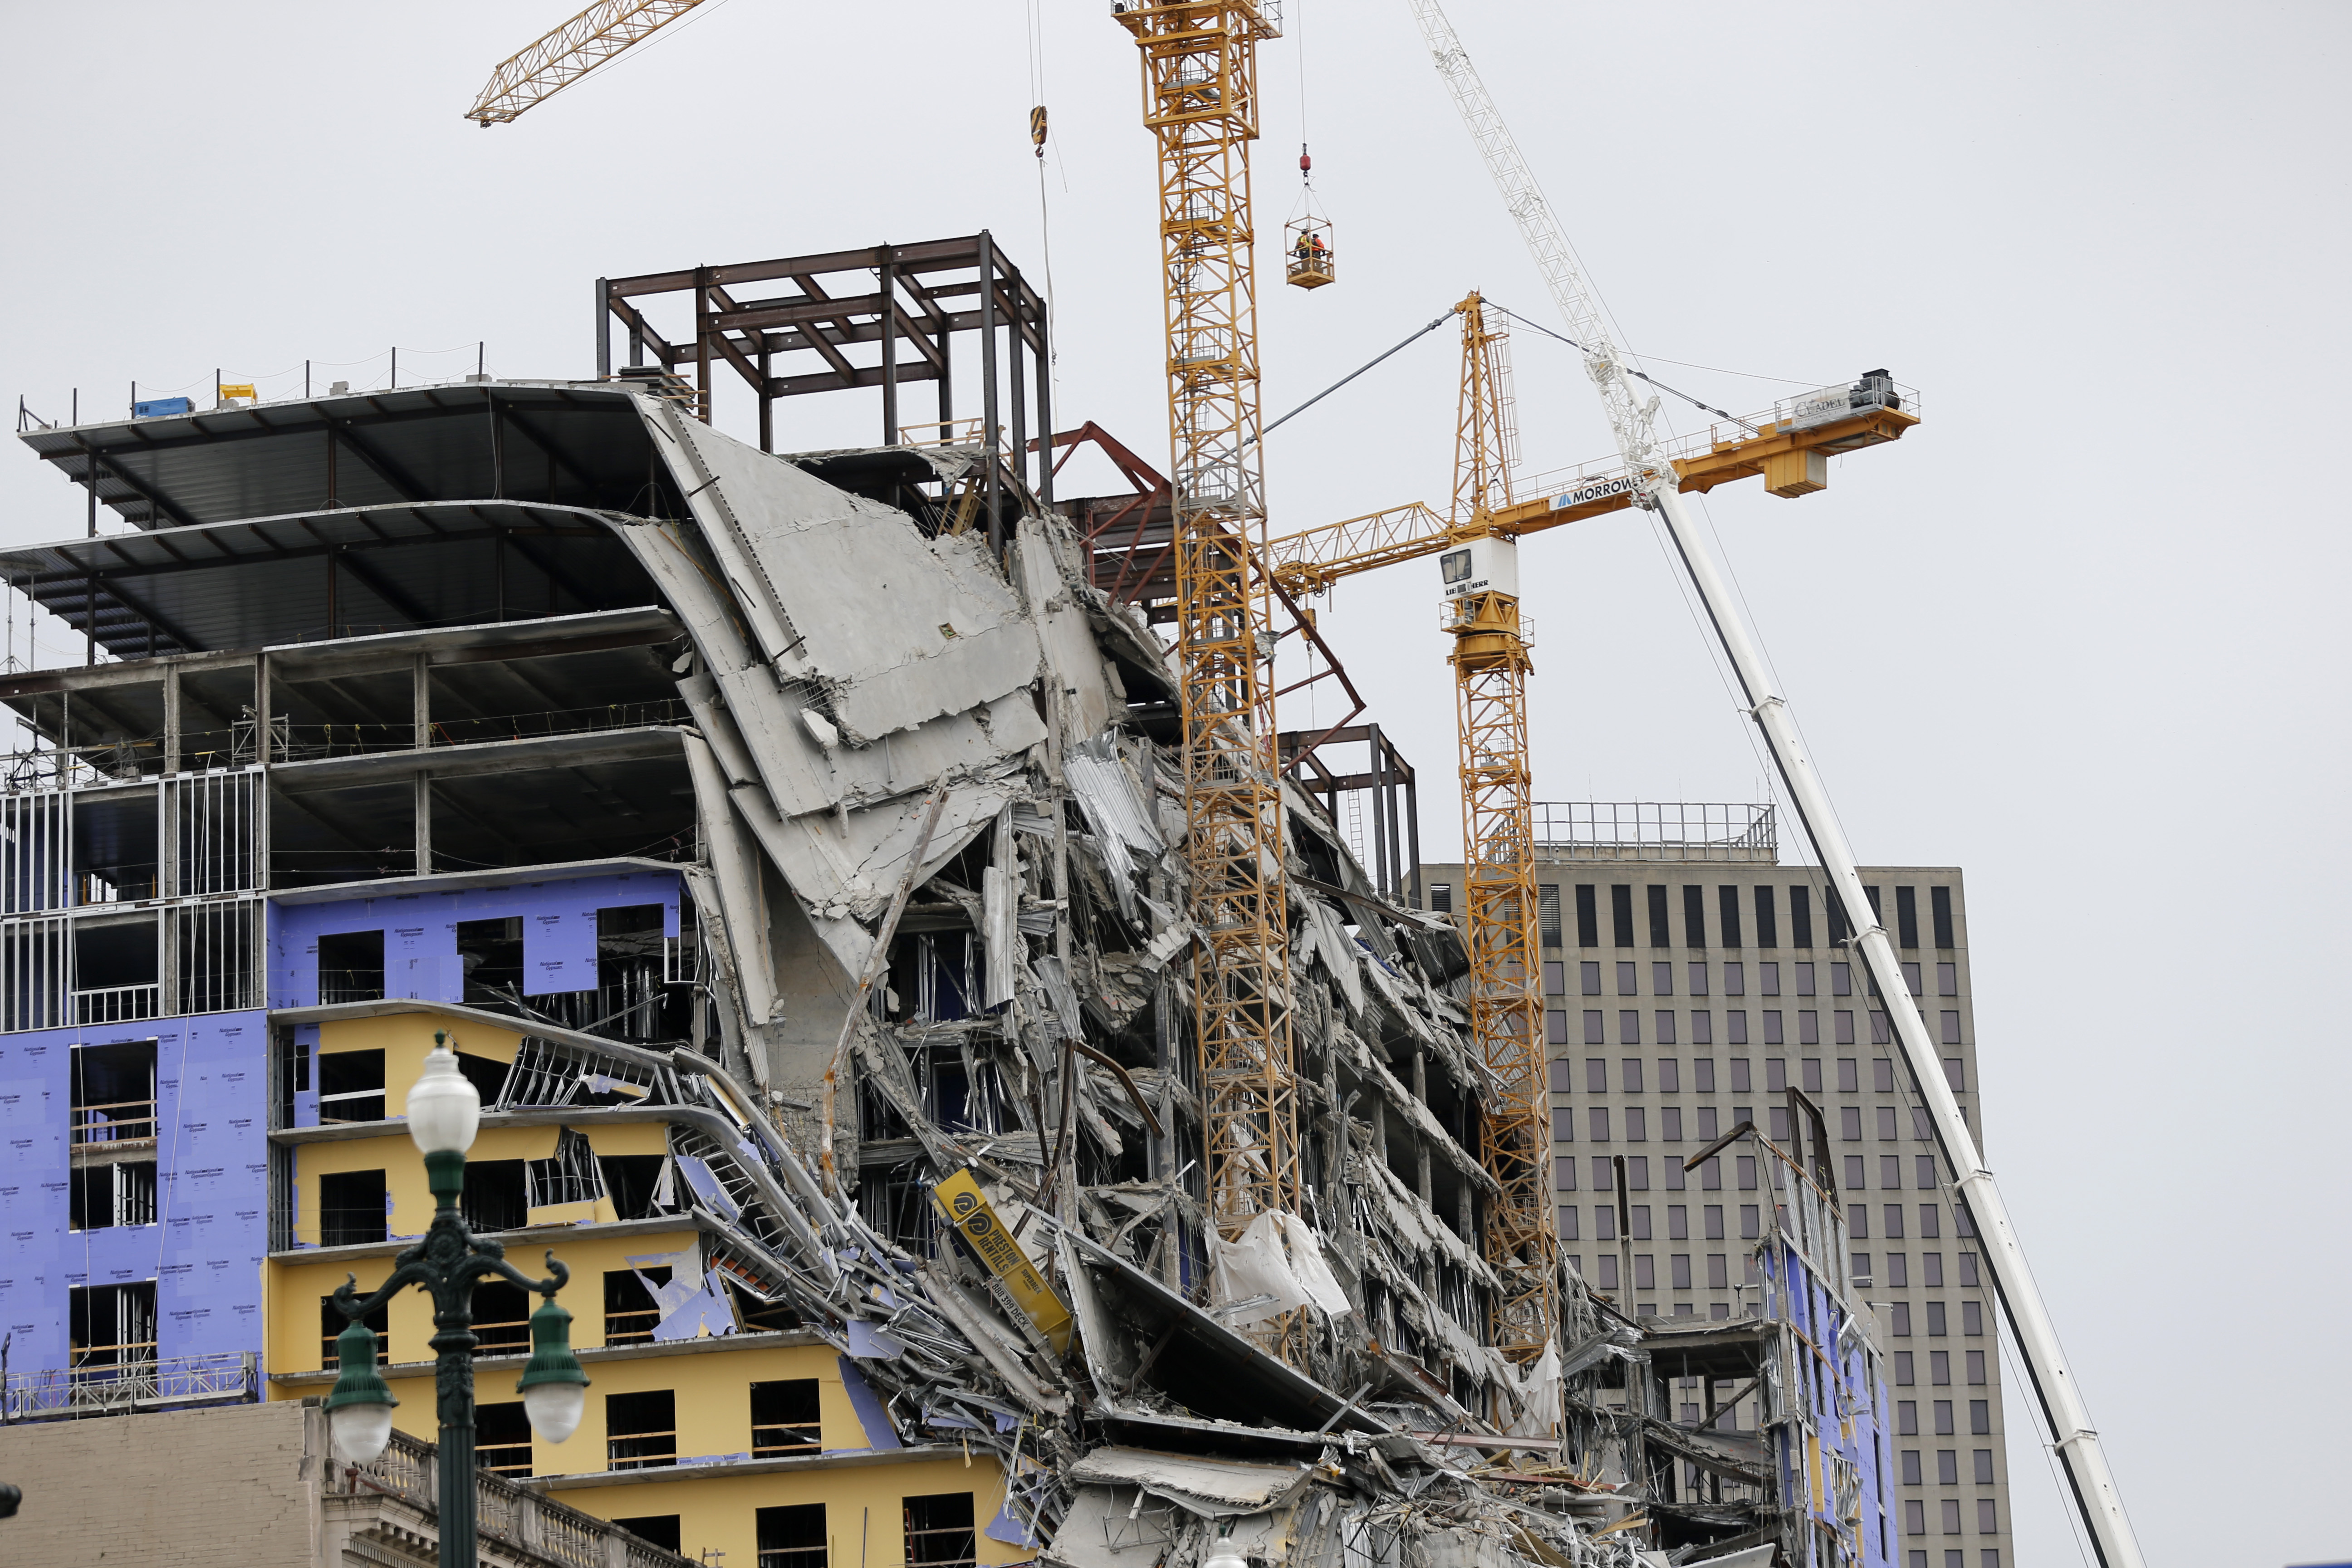 New Orleans Delays Demolition of Cranes in Hotel Collapse